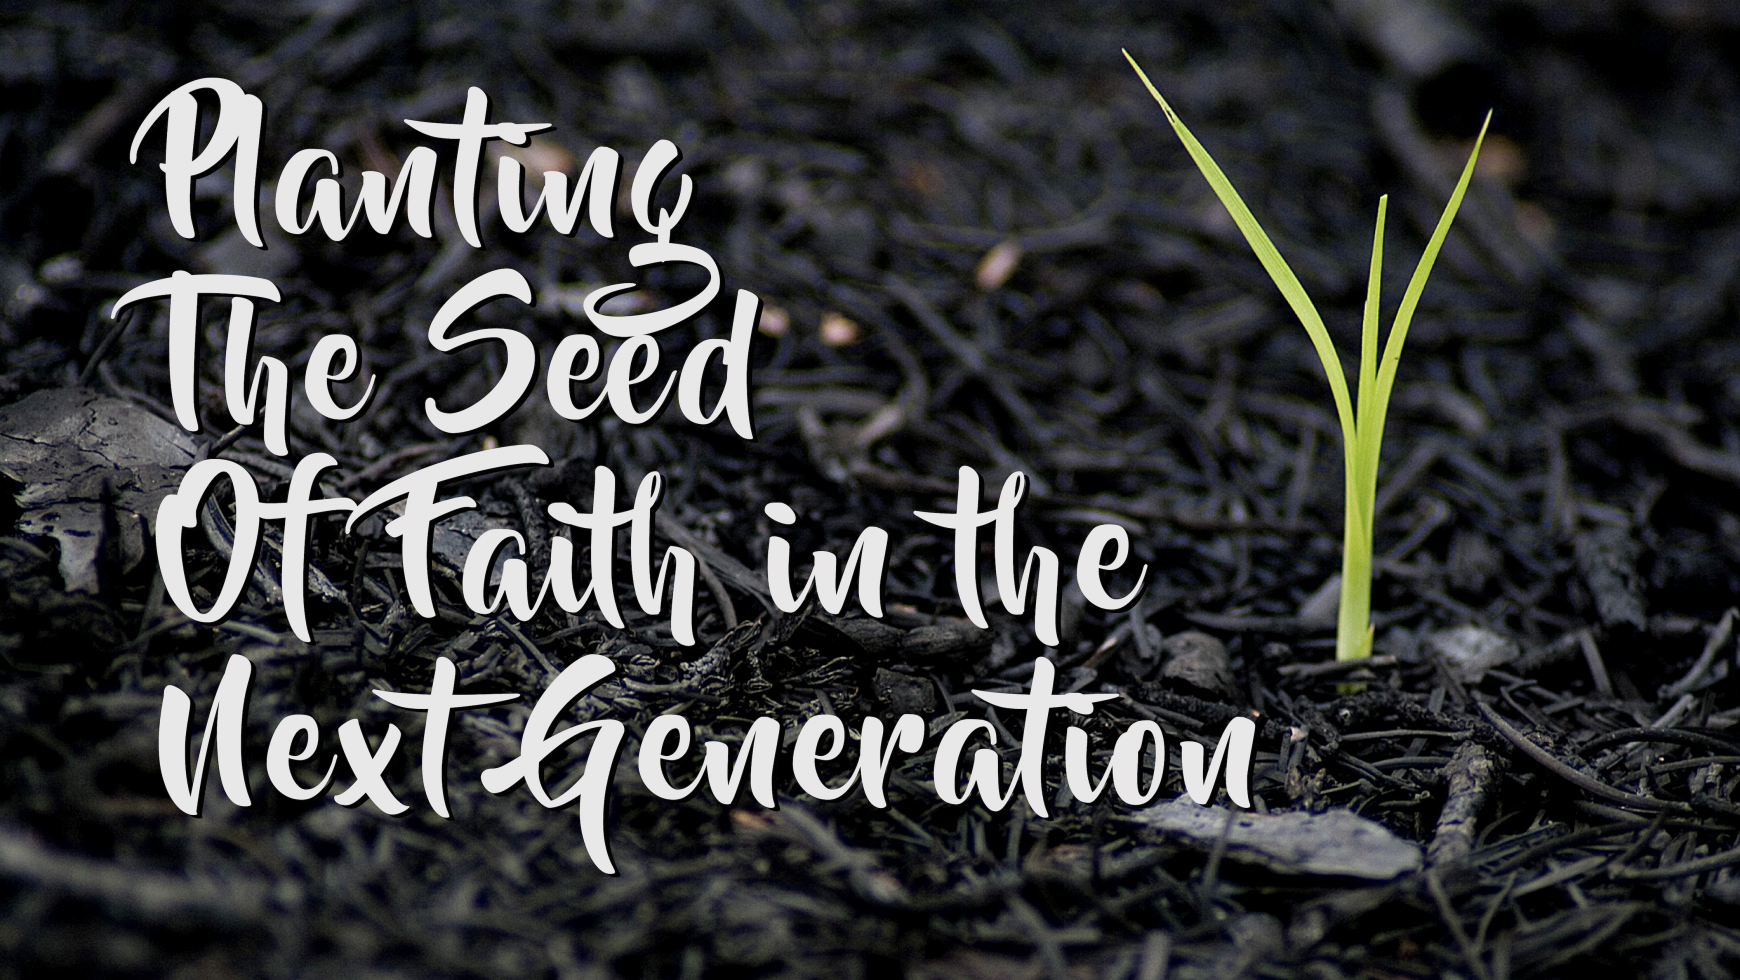 Planting The Seed of Faith in the Next Generation